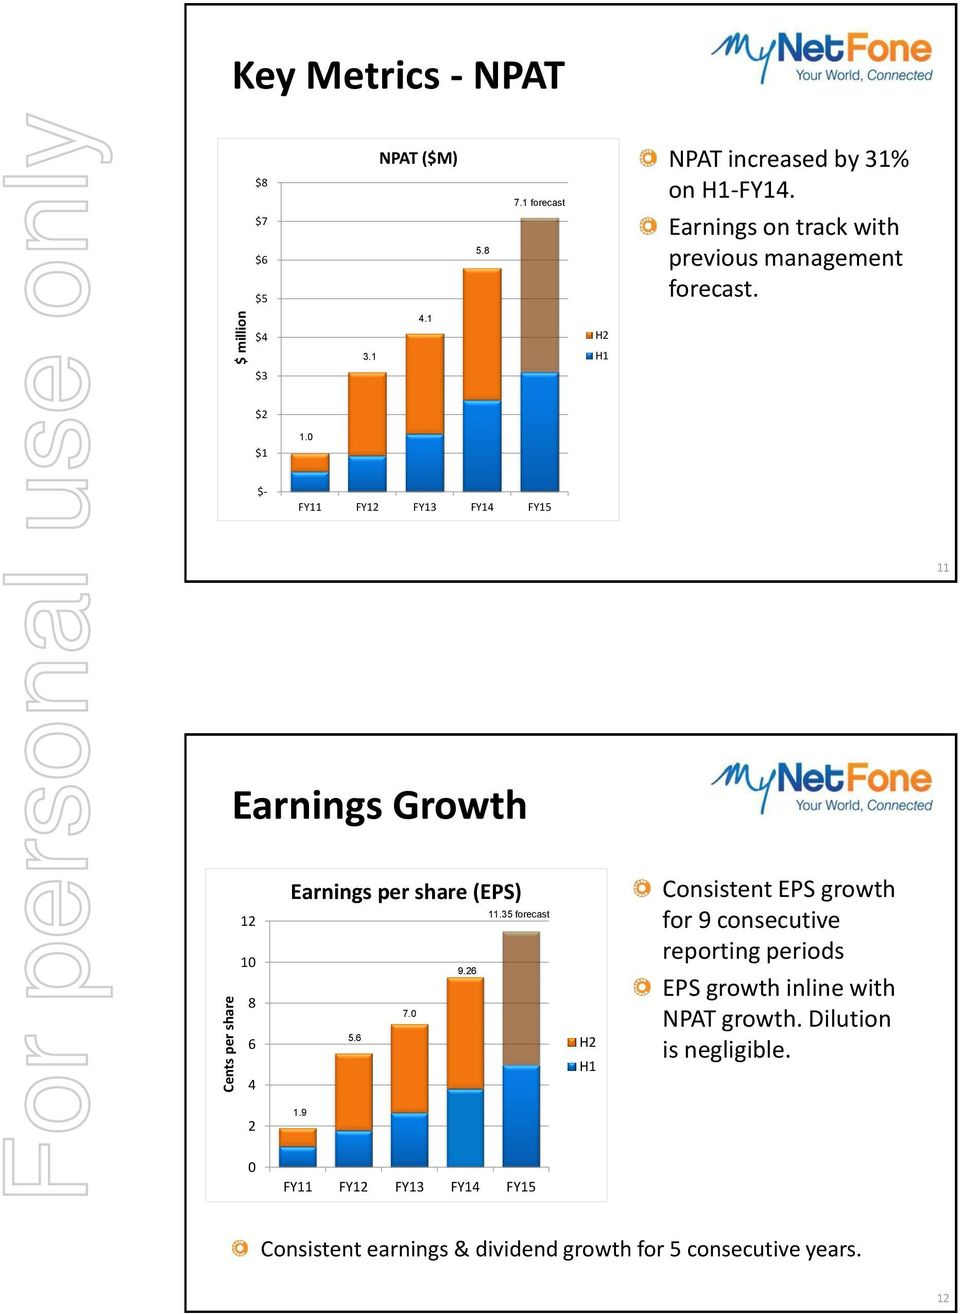 0 $- FY11 FY12 FY13 FY14 FY15 11 Earnings Growth 12 10 8 6 4 Earnings per share (EPS) 11.35 forecast 9.26 7.0 5.